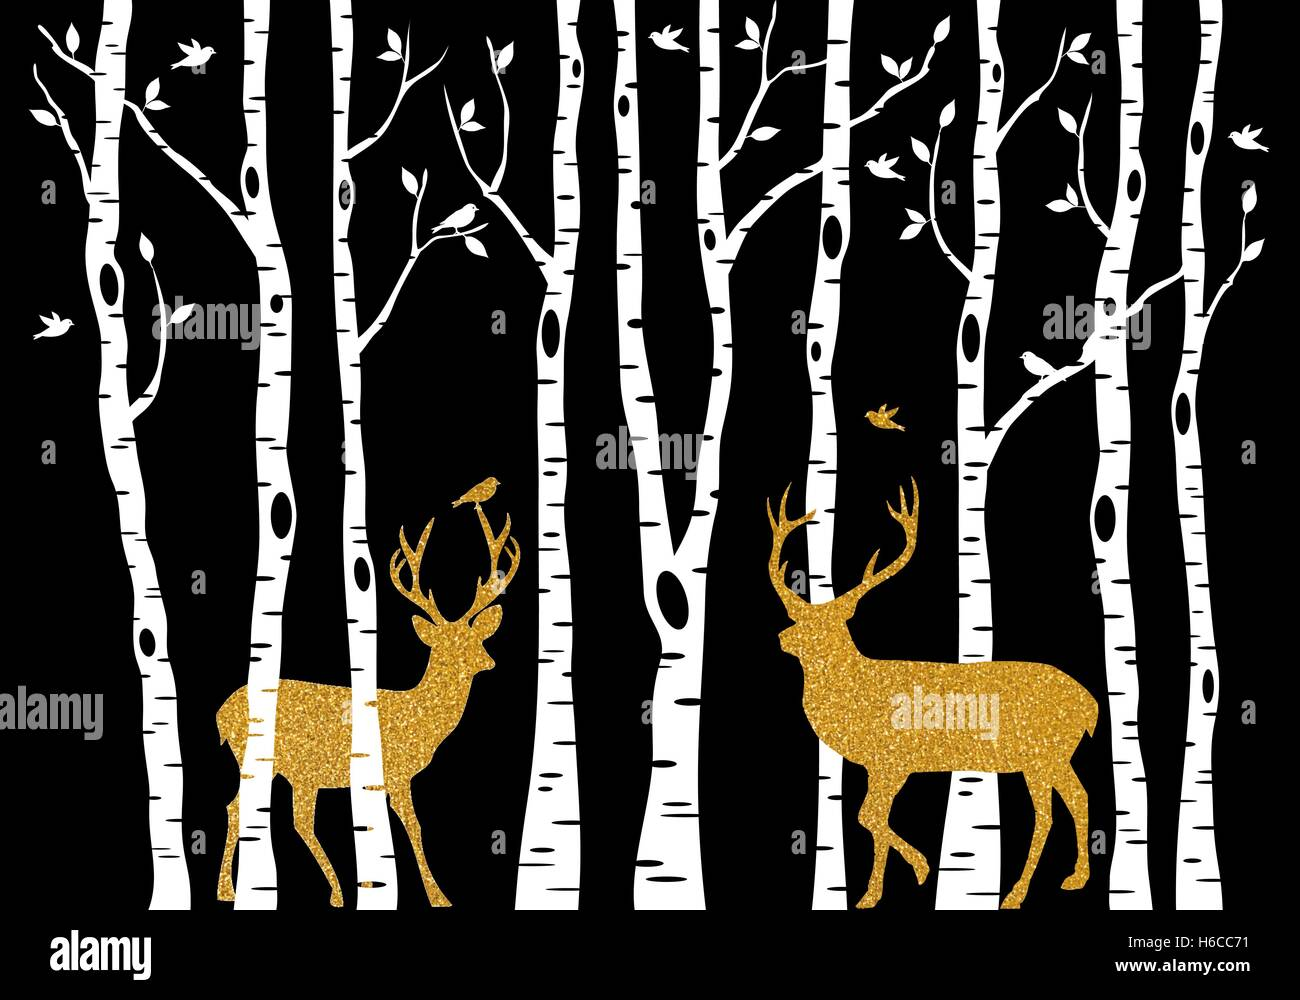 Christmas card with golden reindeer and birch trees forest on black background, vector illustration - Stock Image